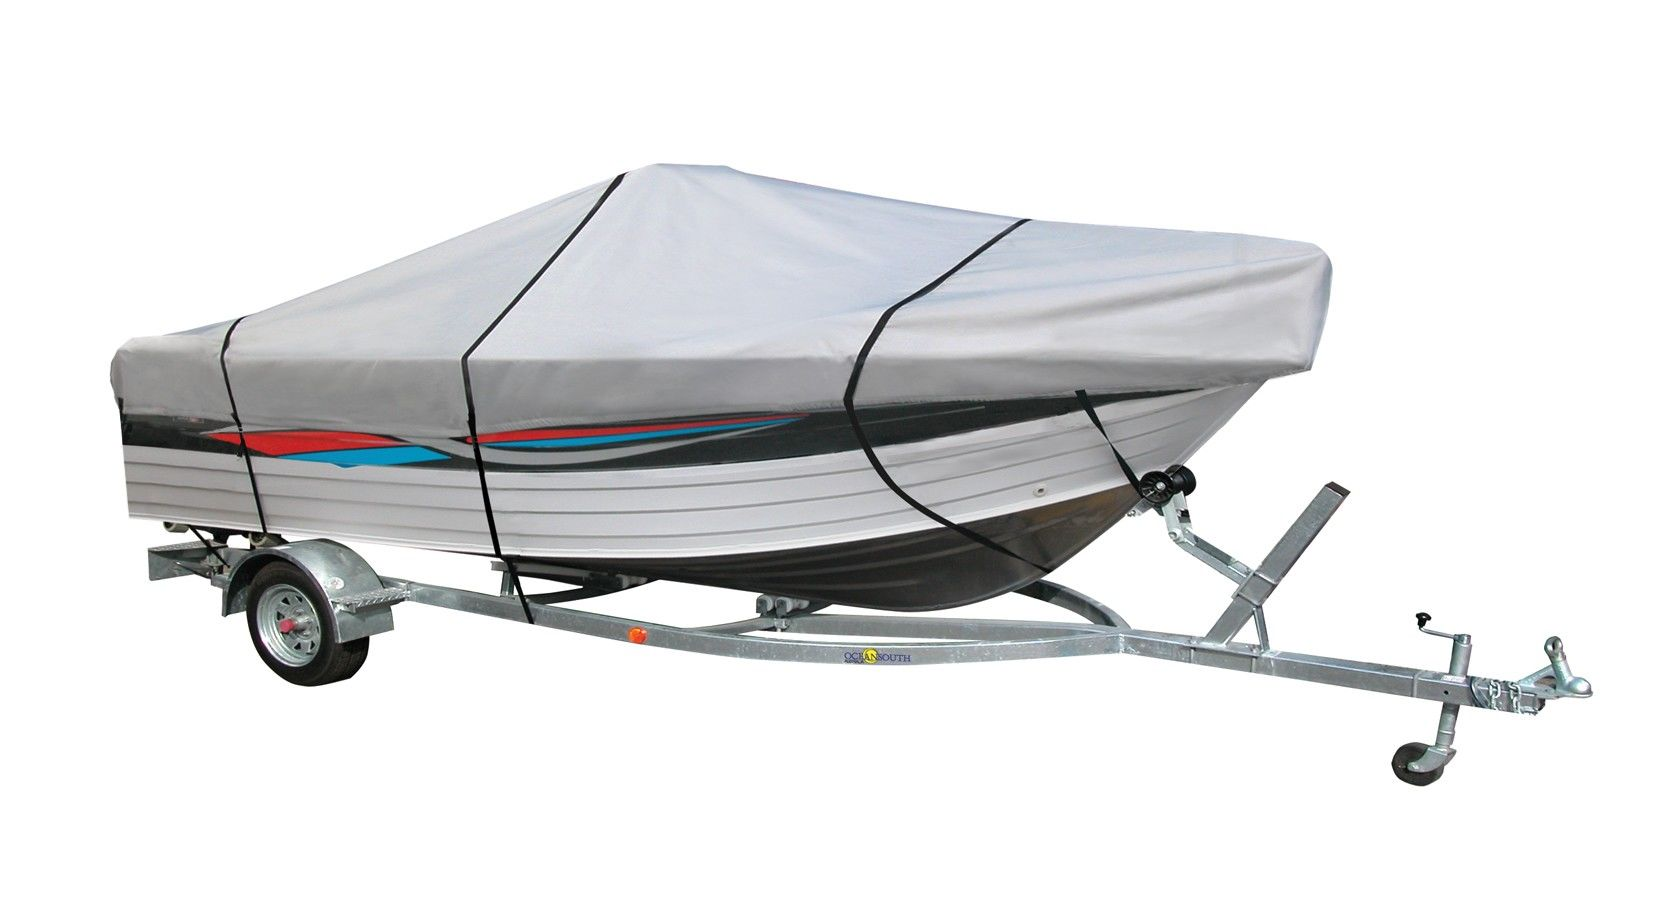 Tent Transport For Boats 5,0-5,3 M Long With Console Ma20410